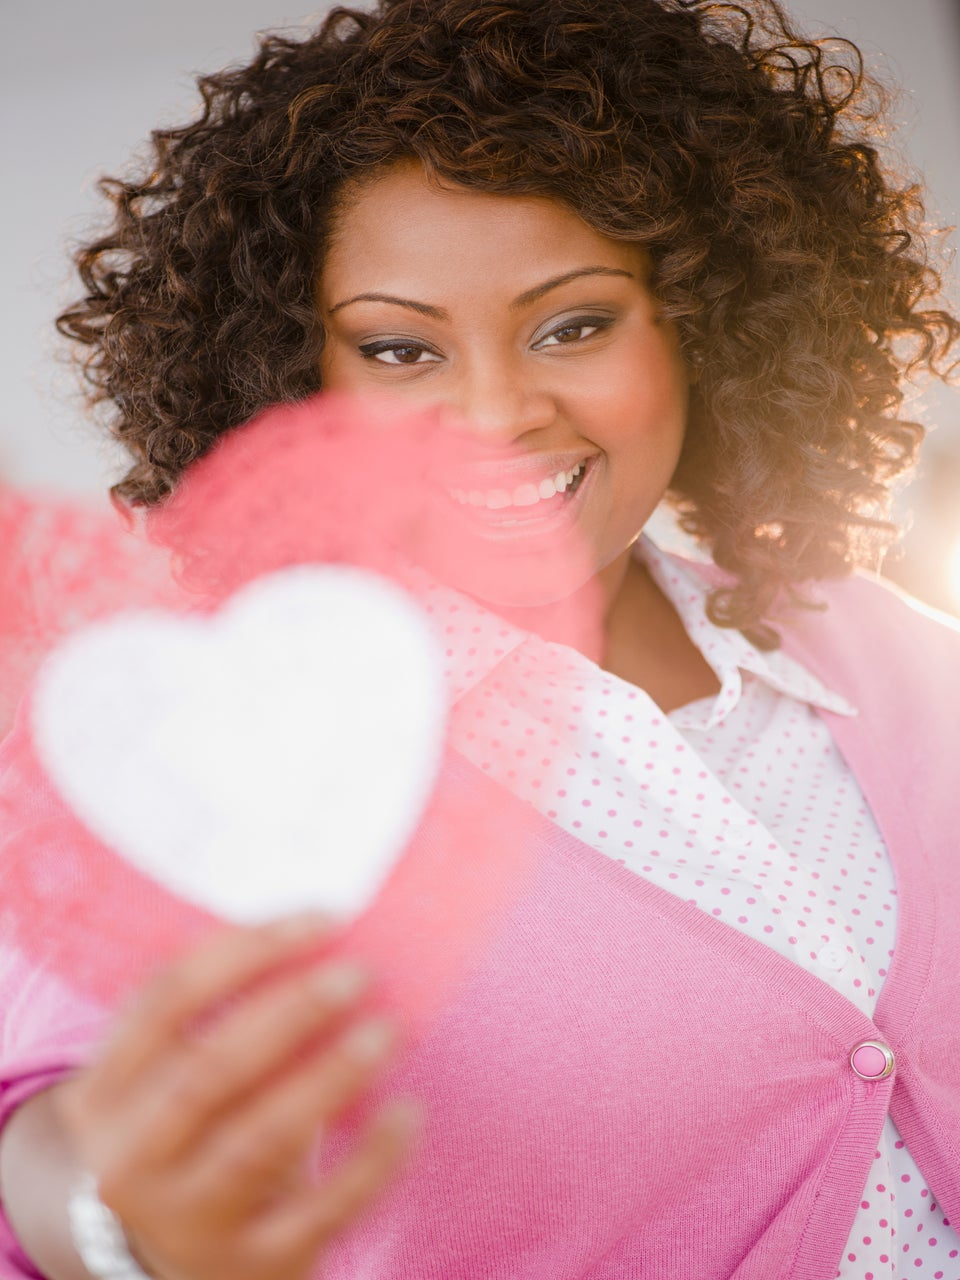 Plus Size Model in the City: So, It's Valentine's Day…